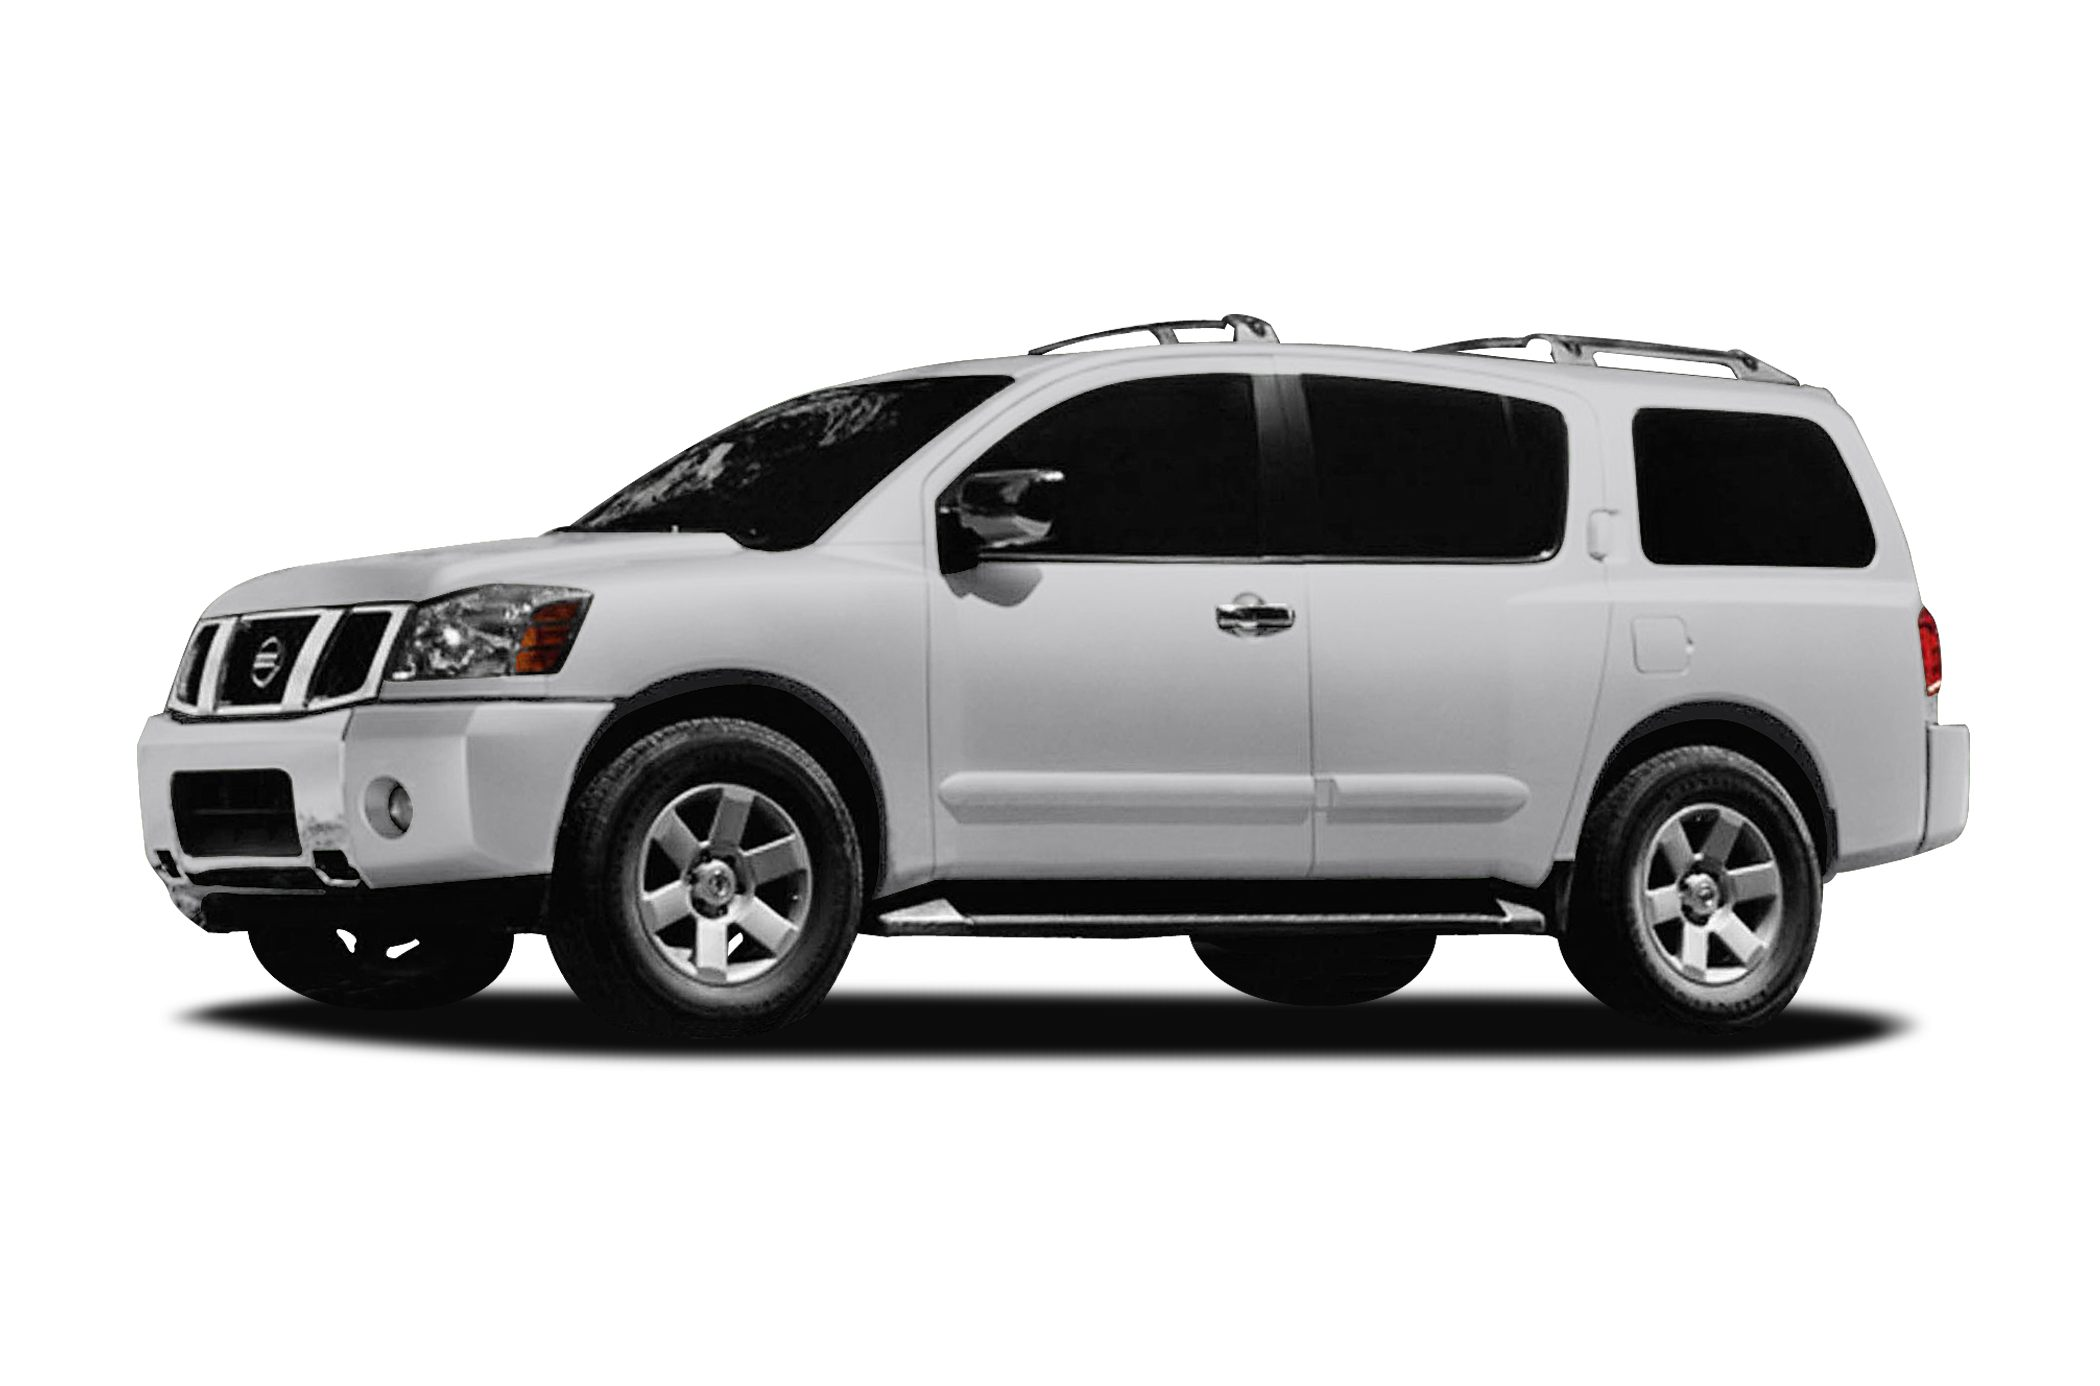 2007 Nissan Armada SE 2007 Armada This is perfect summer SUV Plenty of room for the family and ge